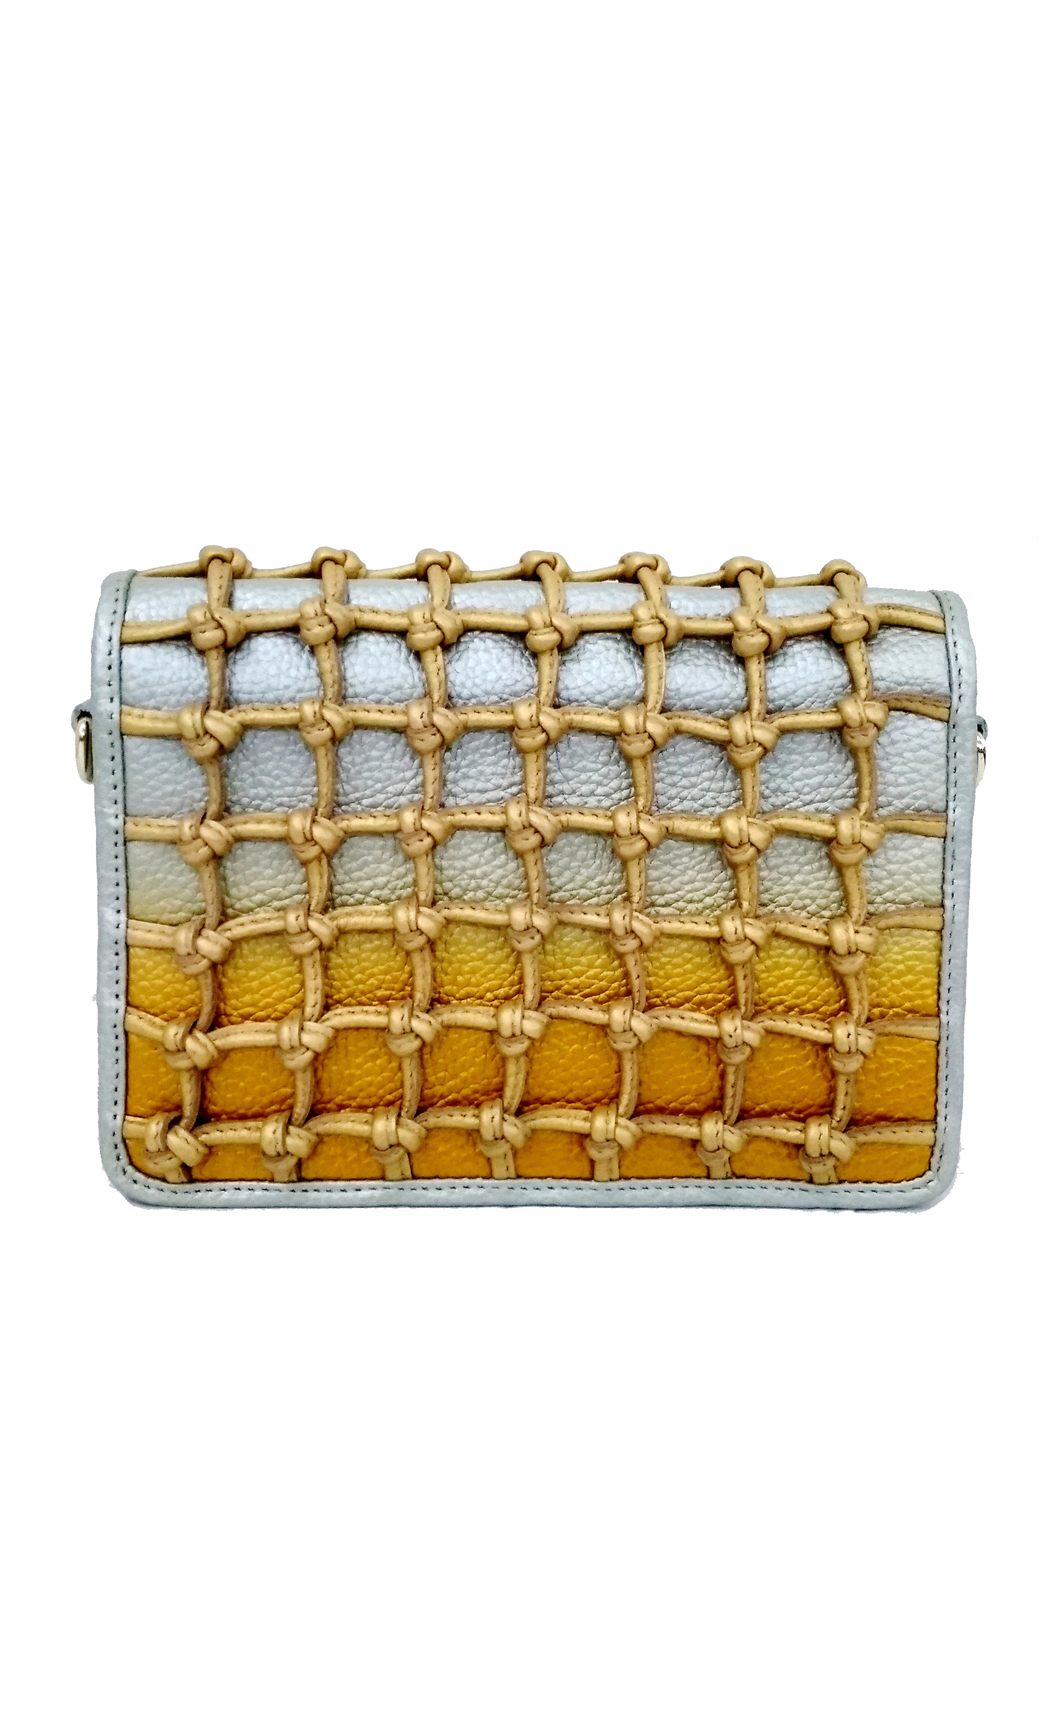 Knot Flap Clutch In Silver-Gold. Buy Online